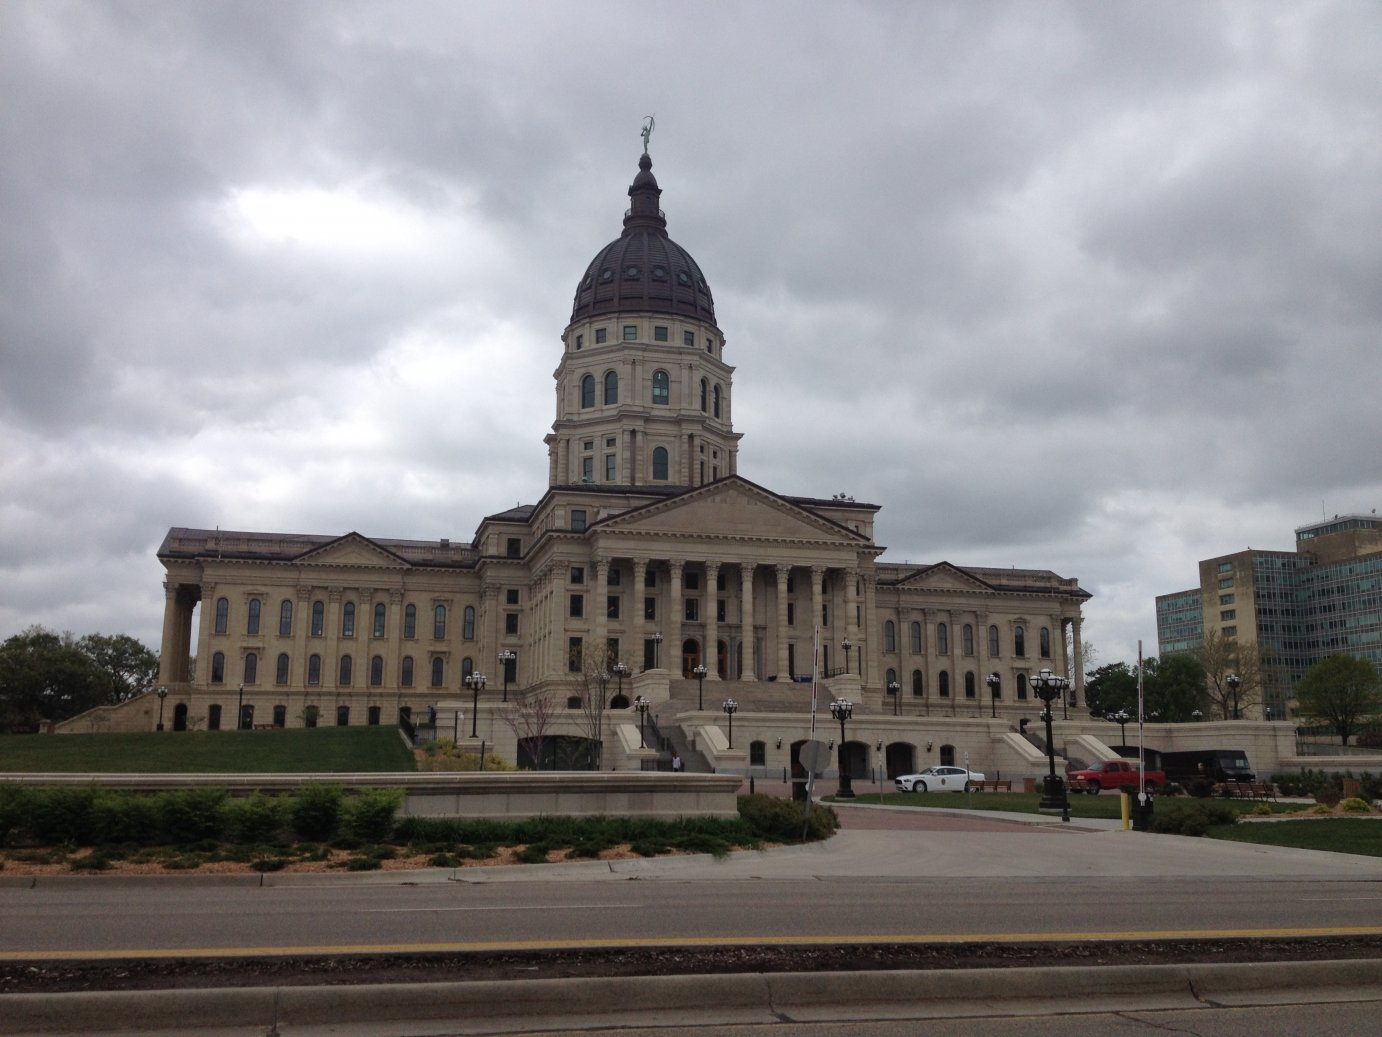 Dark clouds gather above the Kansas Statehouse in Topeka. (Photo by J. Schafer)